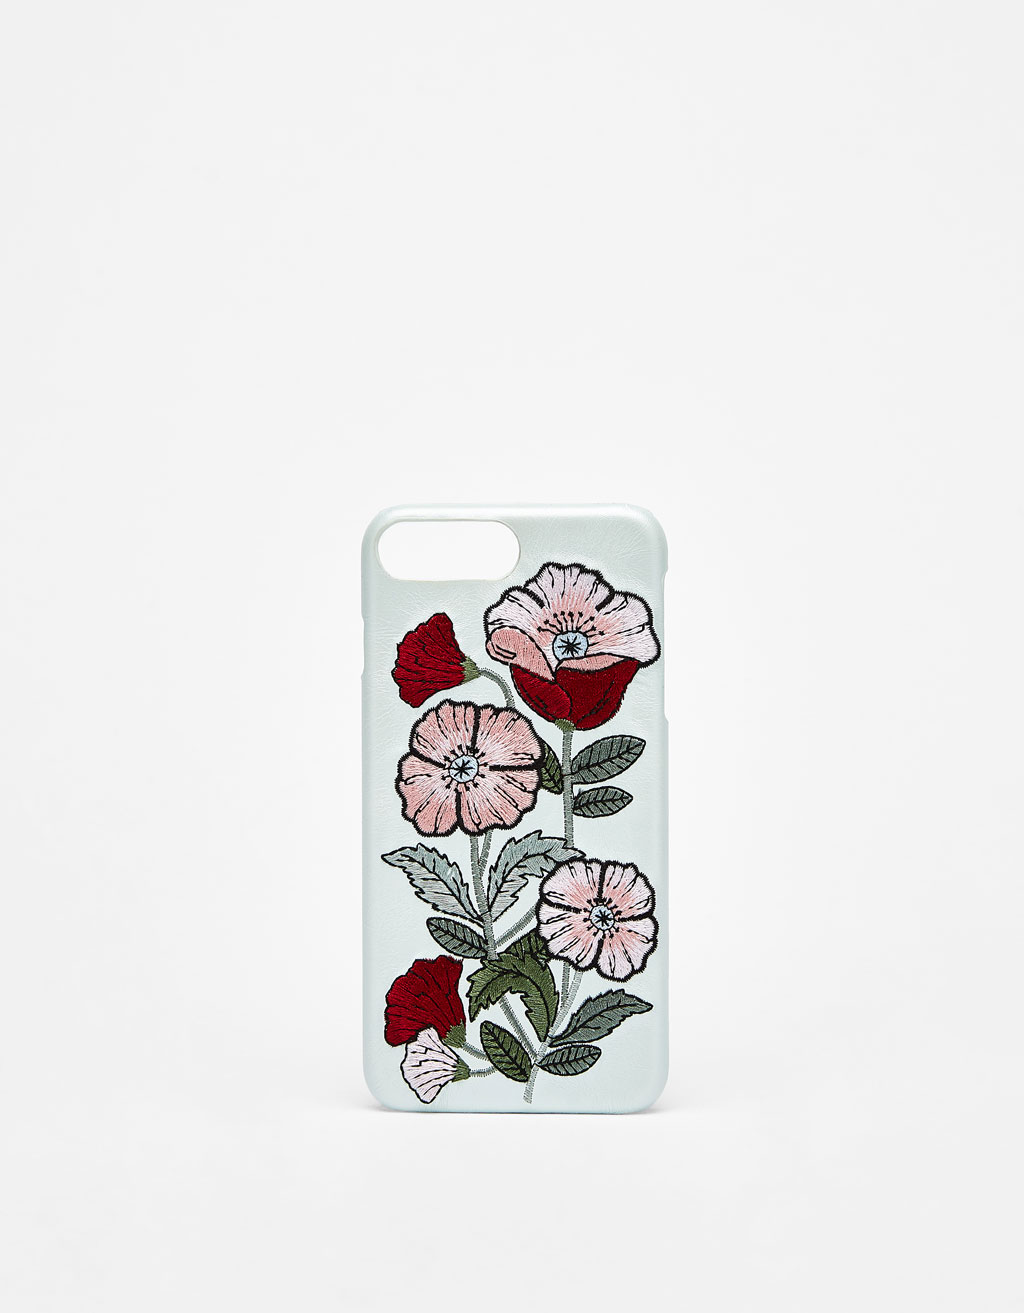 Floral embroidery iPhone 6 Plus/7 Plus/8 Plus case